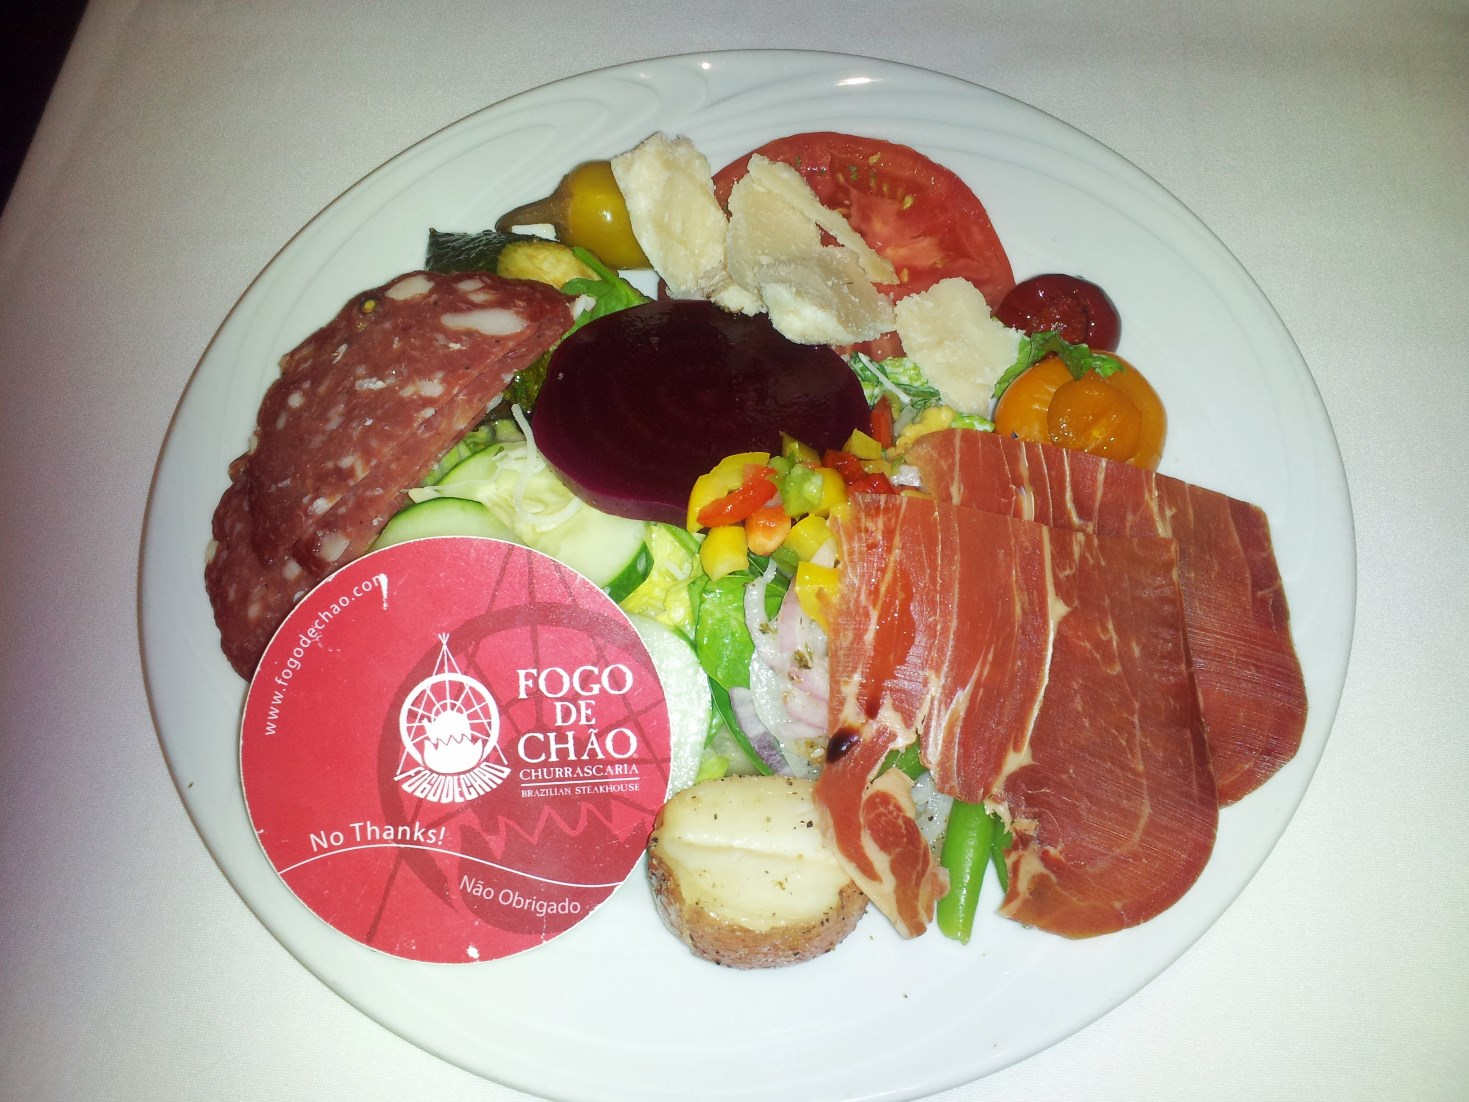 a plate of salad from Fogo de Chao restaurant